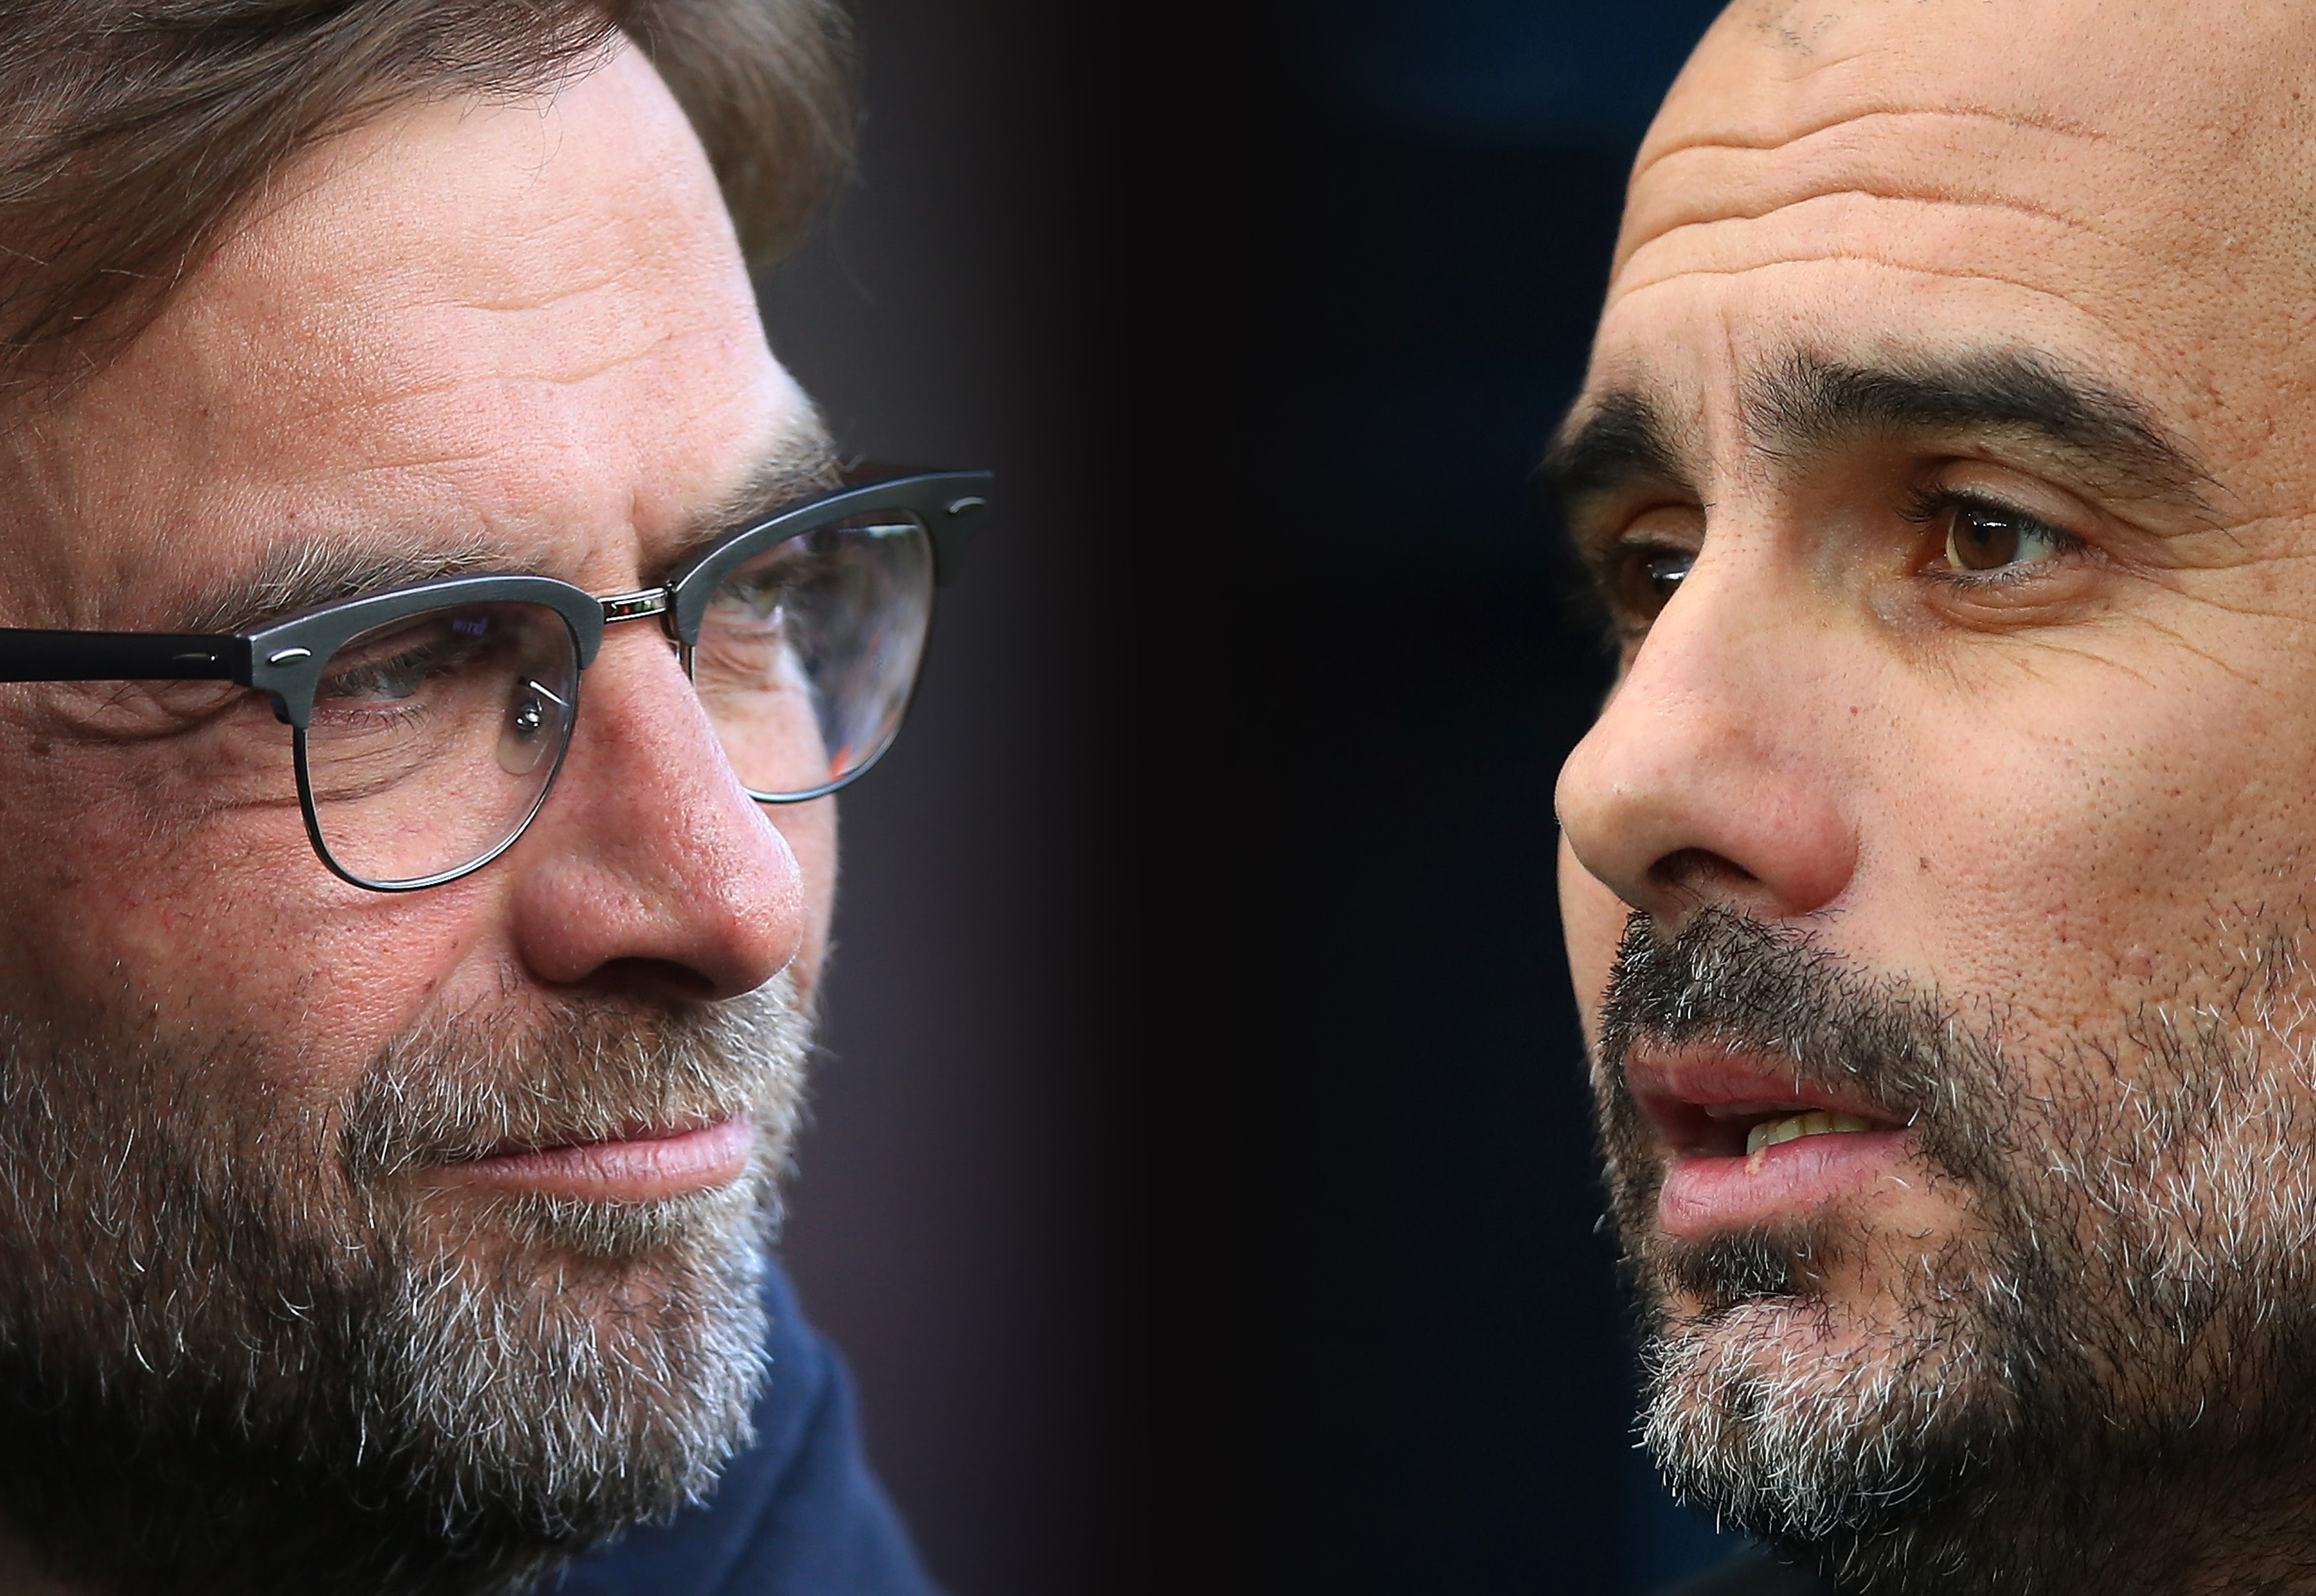 Klopp claims had City lost their 3 main centre-halves they would not have won the league. Is he right?